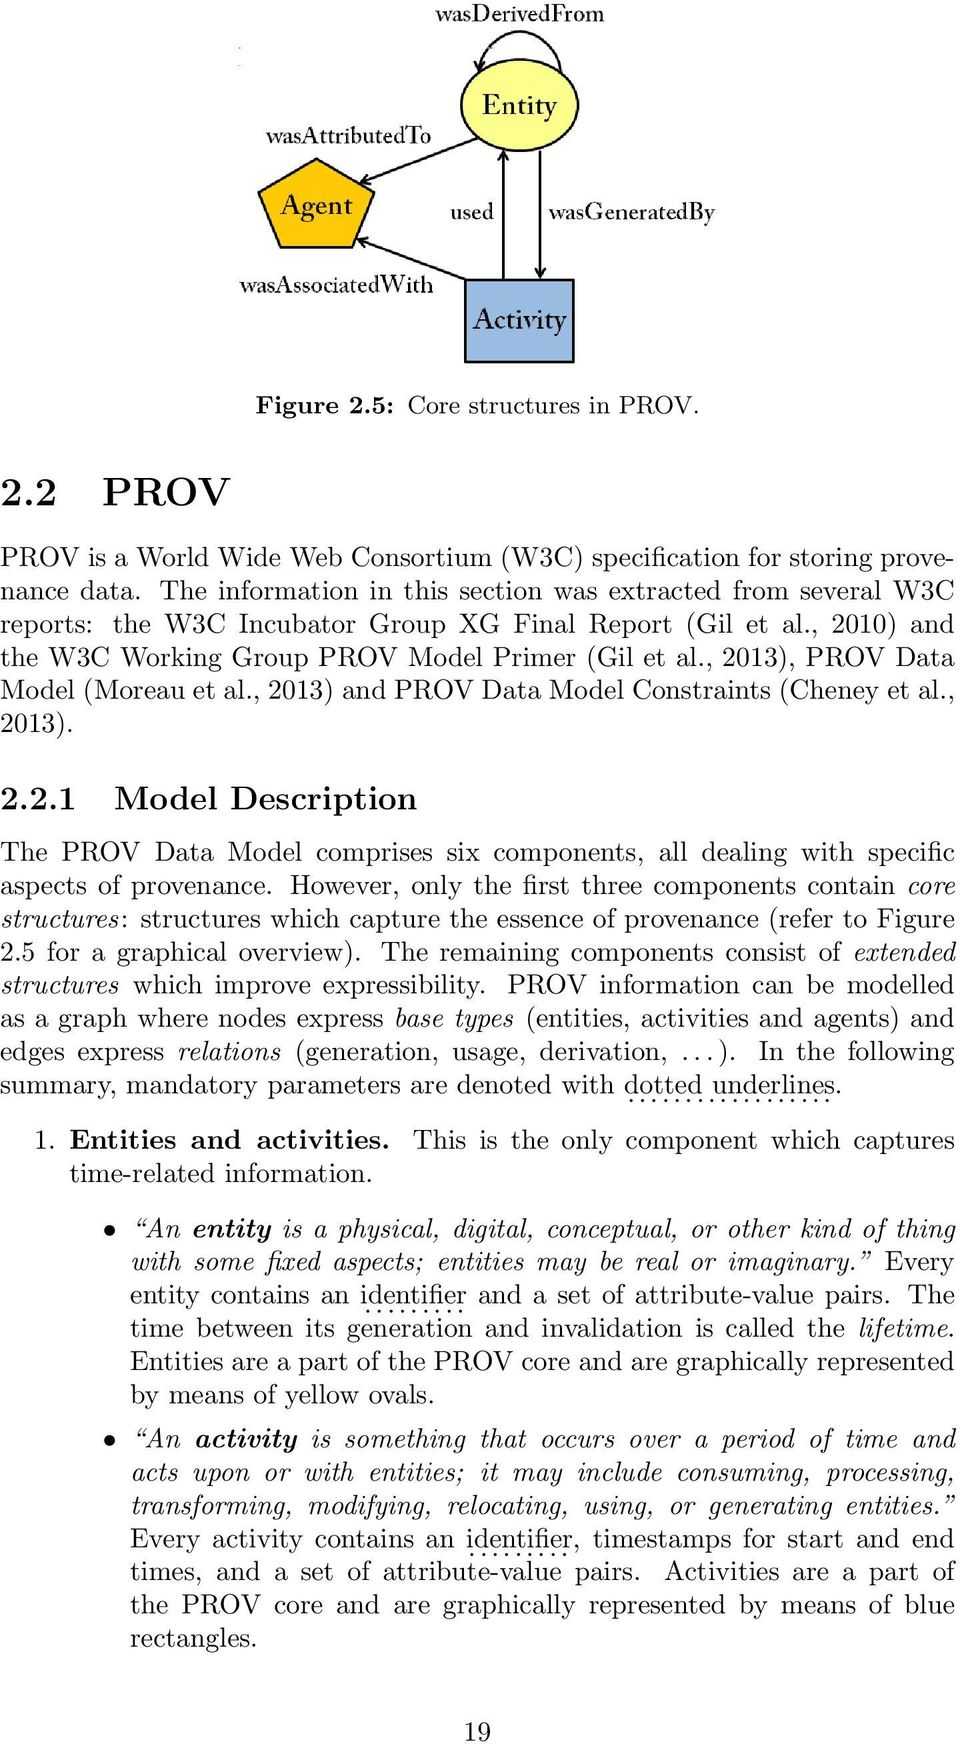 , 2013), PROV Data Model (Moreau et al., 2013) and PROV Data Model Constraints (Cheney et al., 2013). 2.2.1 Model Description The PROV Data Model comprises six components, all dealing with specific aspects of provenance.